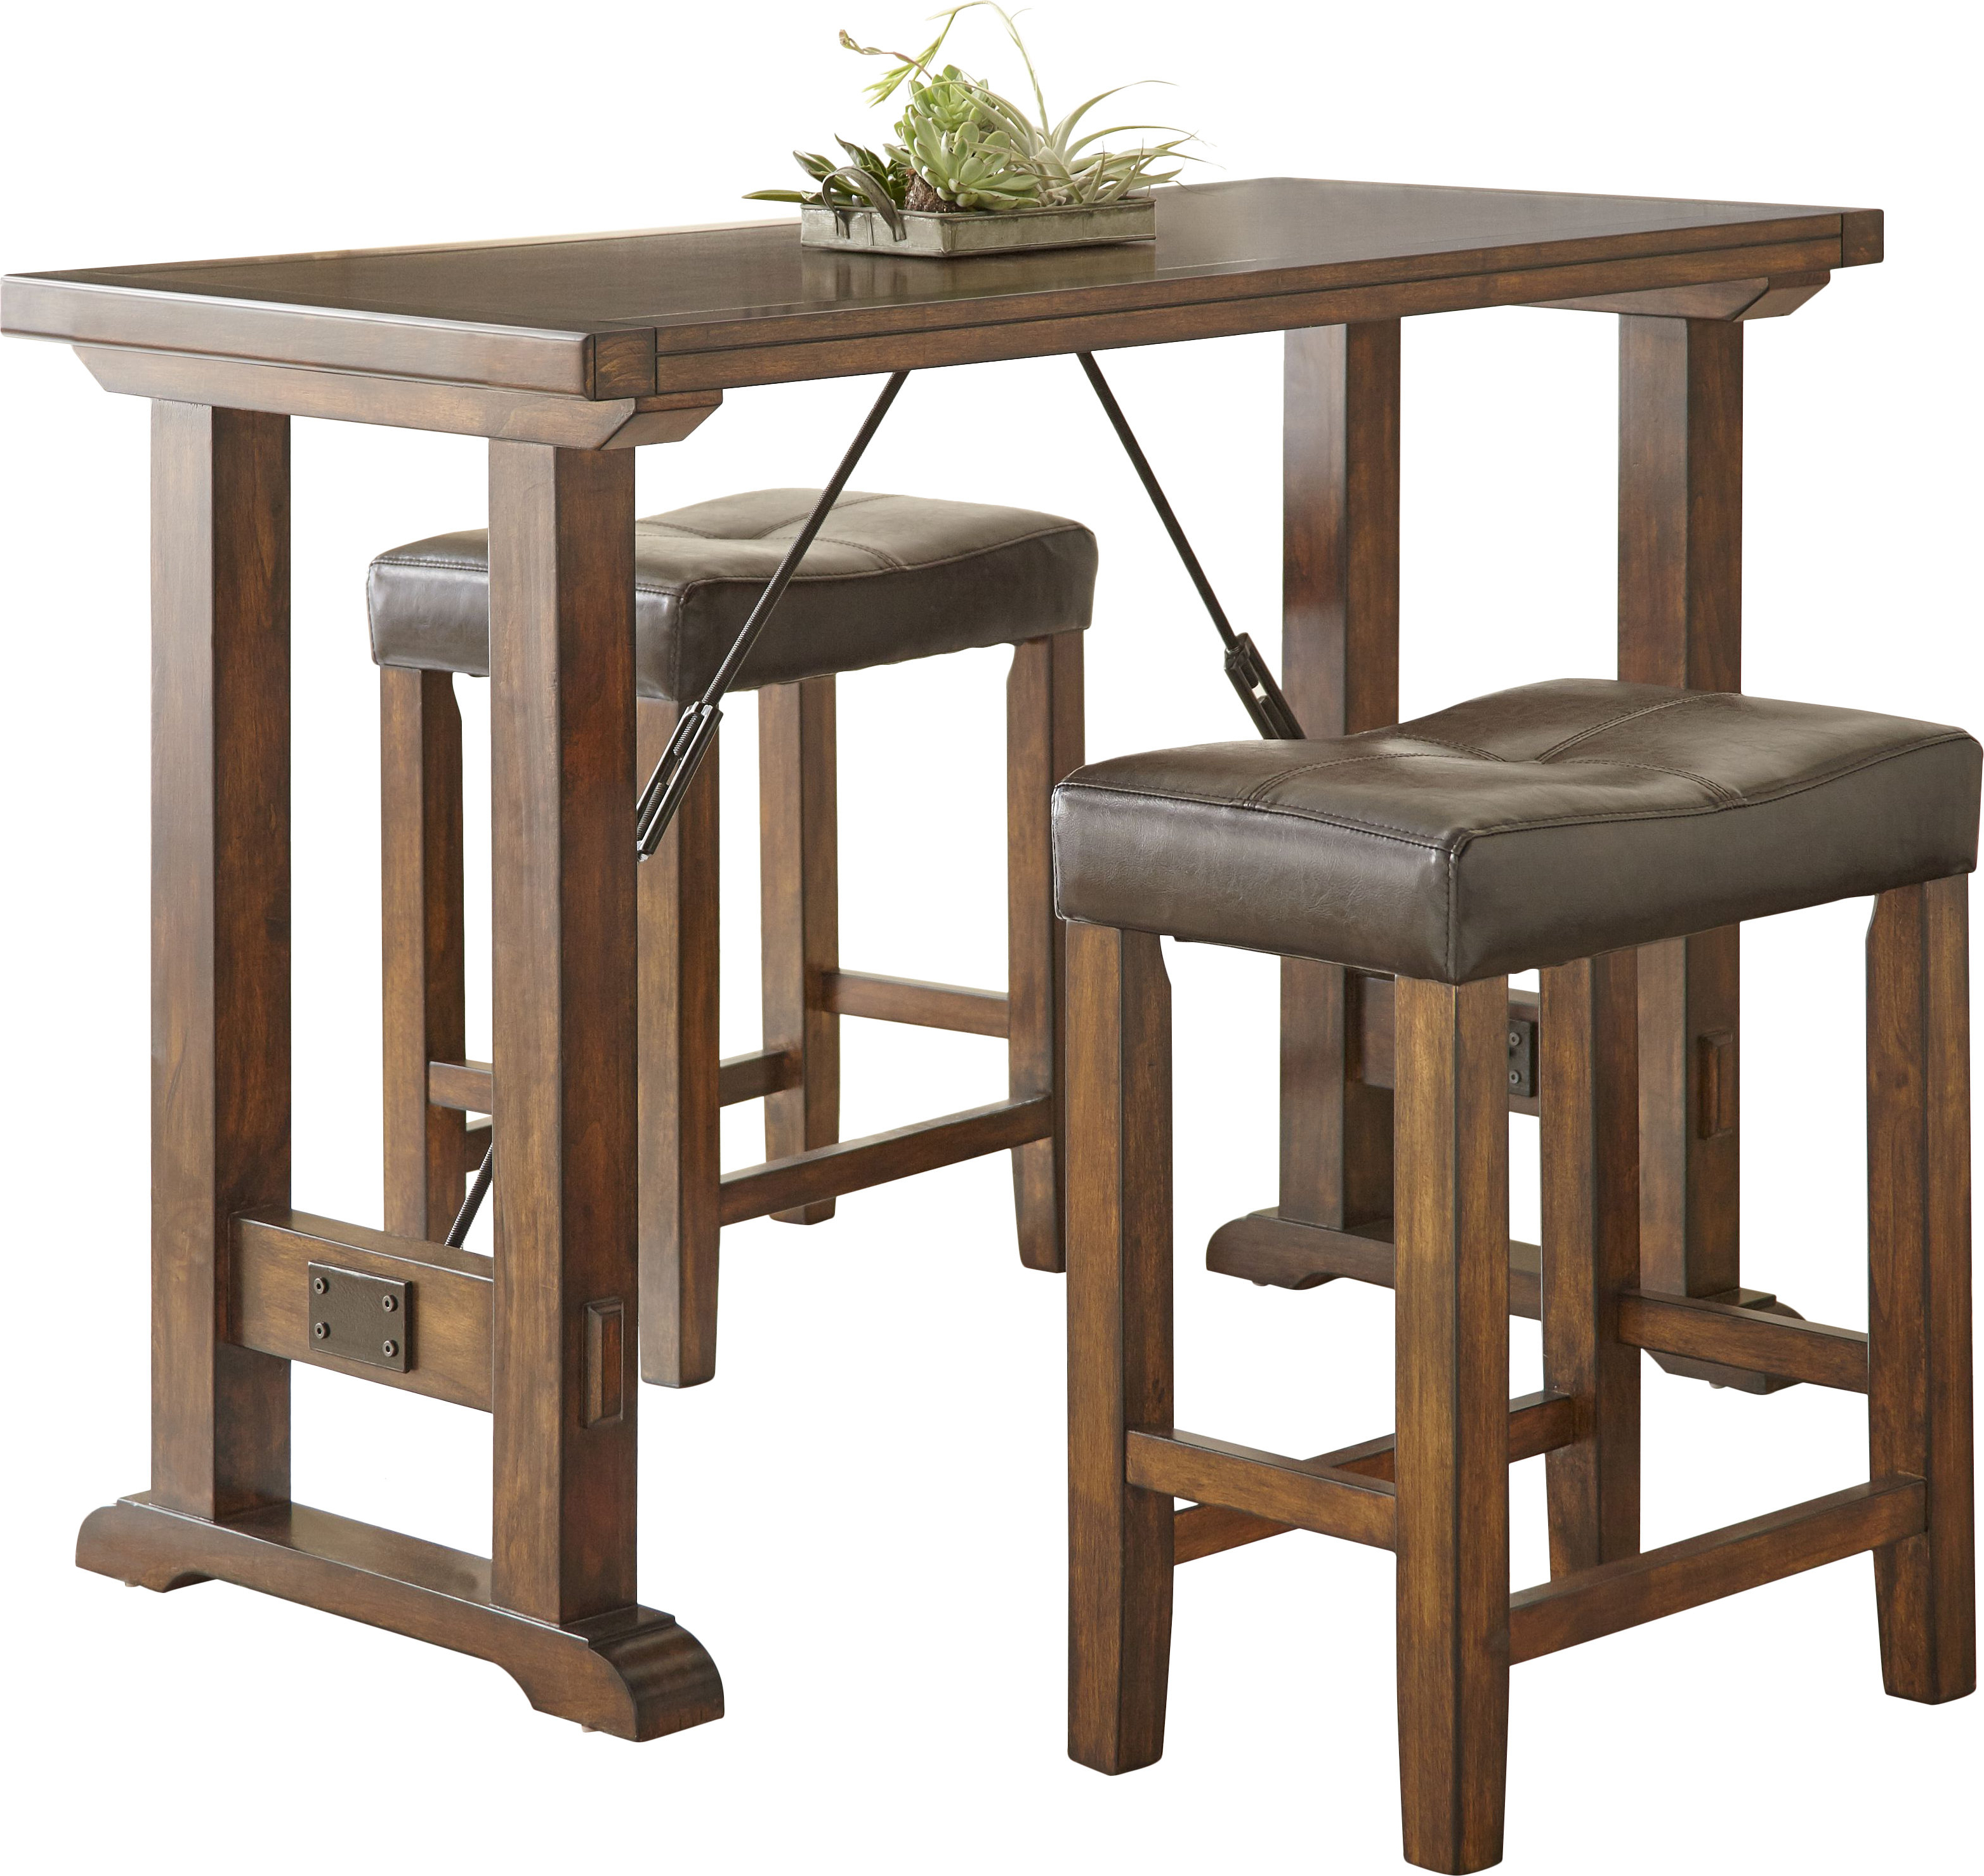 Alcott Hill Norrell 3 Piece Counter Height Dining Set & Reviews Within Most Recent Hood Canal 3 Piece Dining Sets (View 4 of 25)